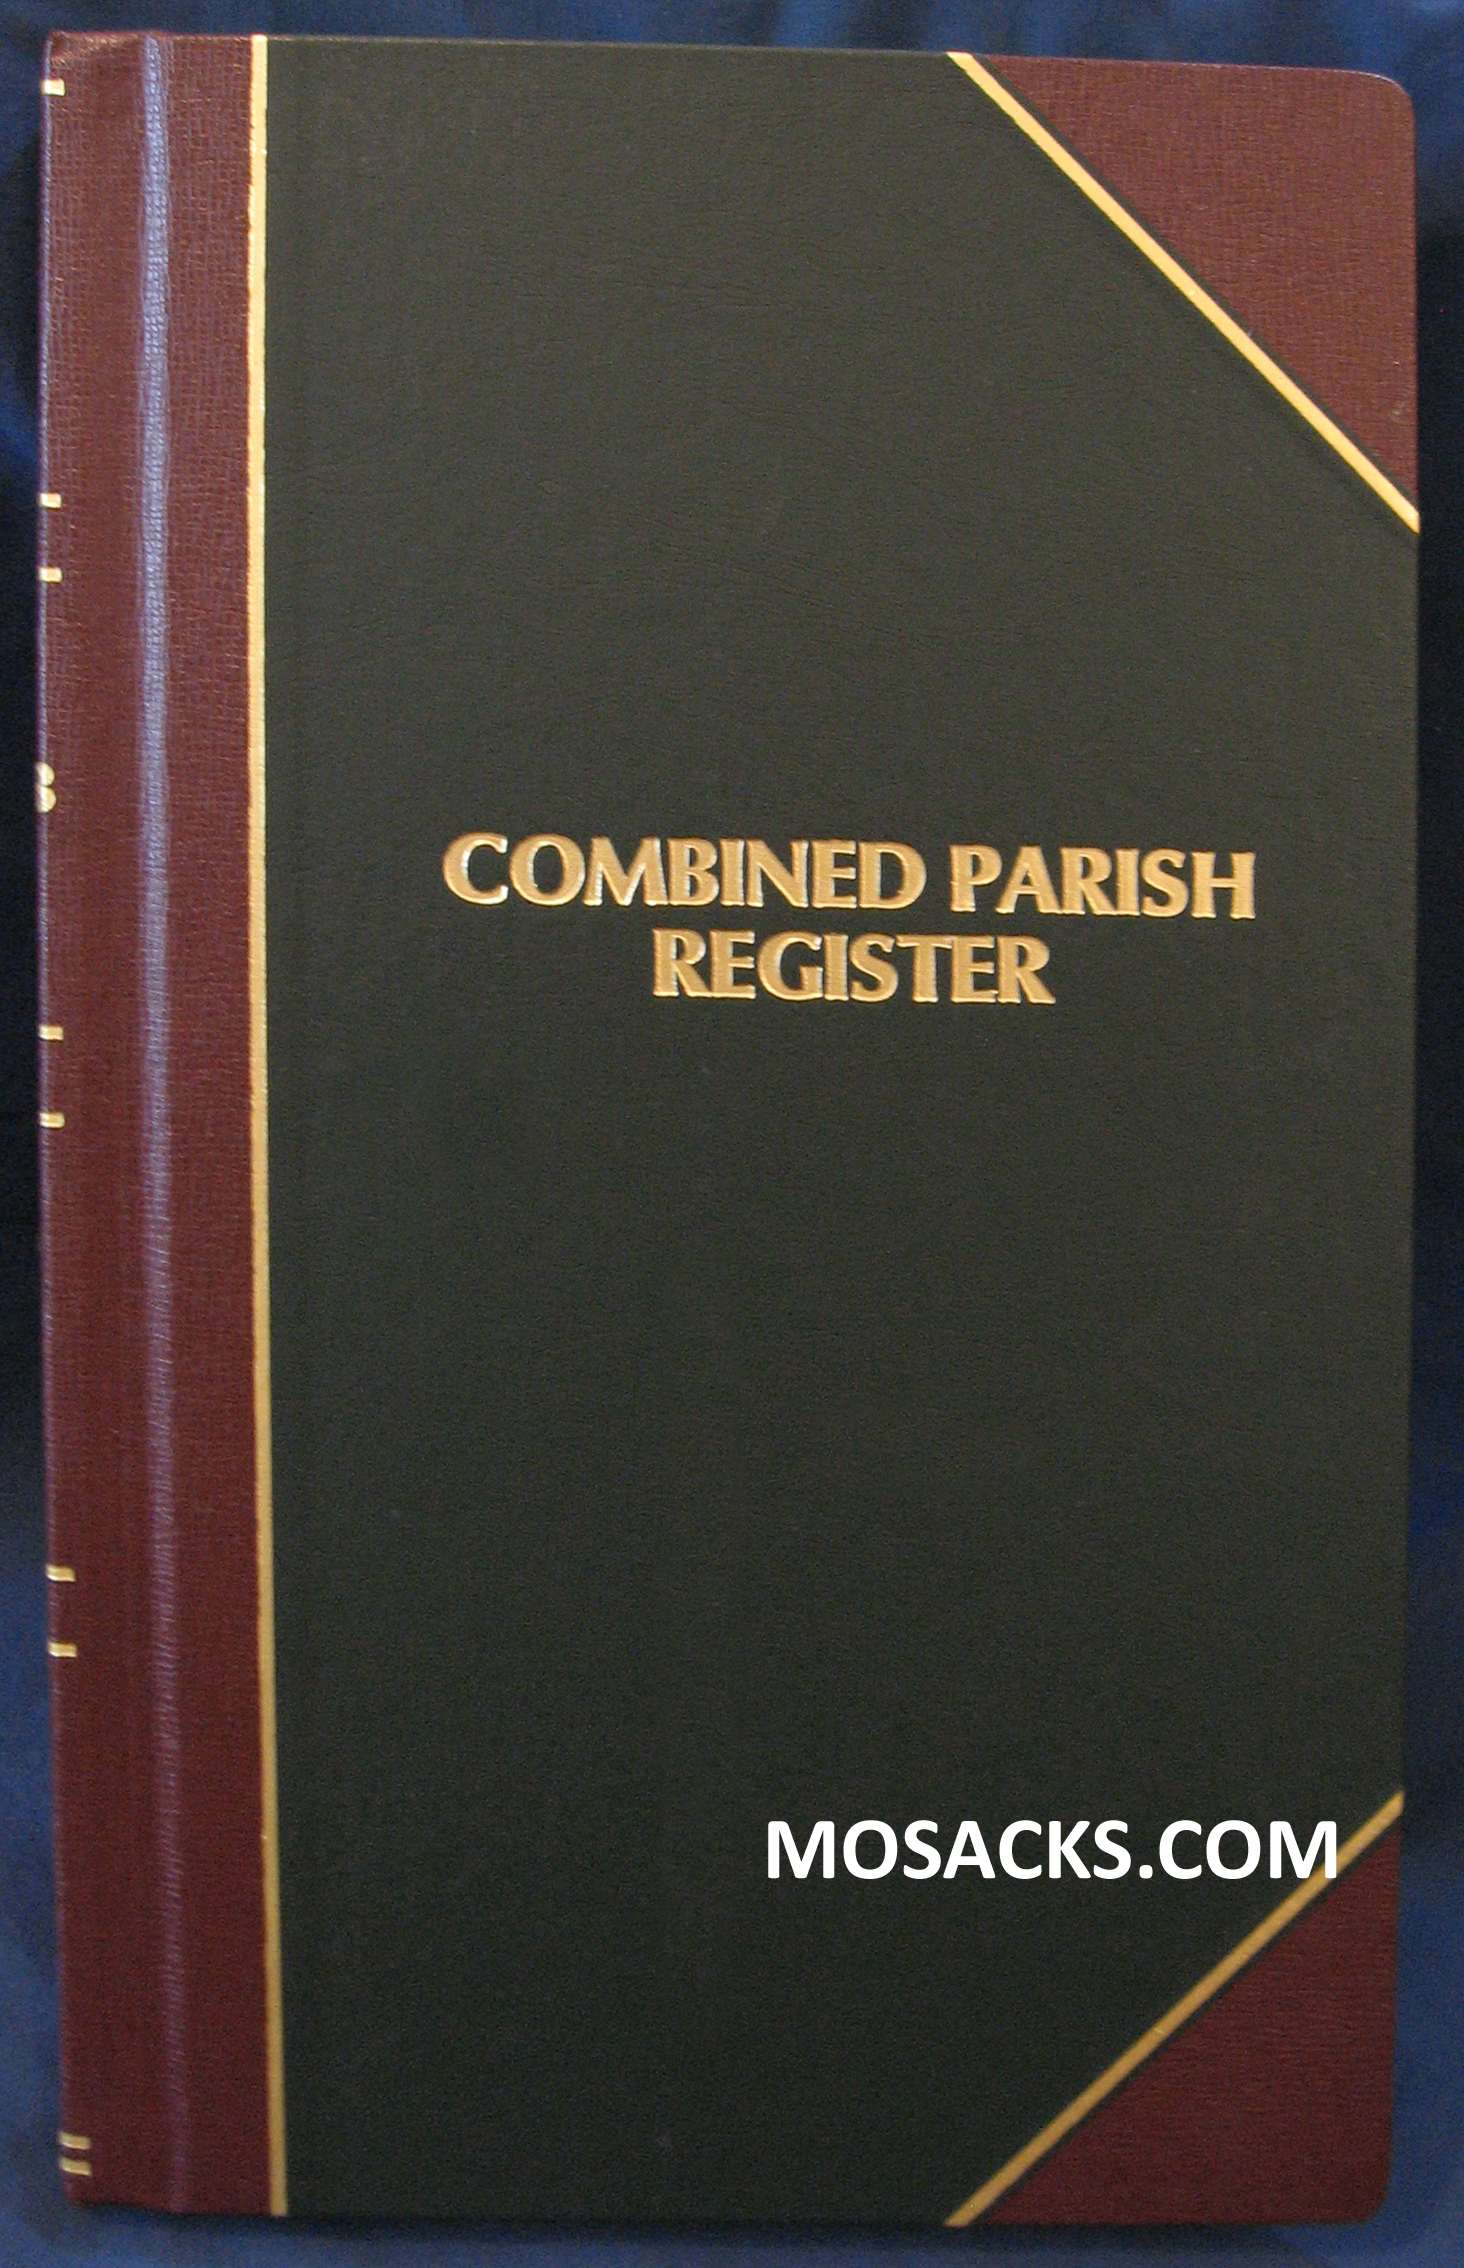 Combined Parish Register No. 12 Standard Edition